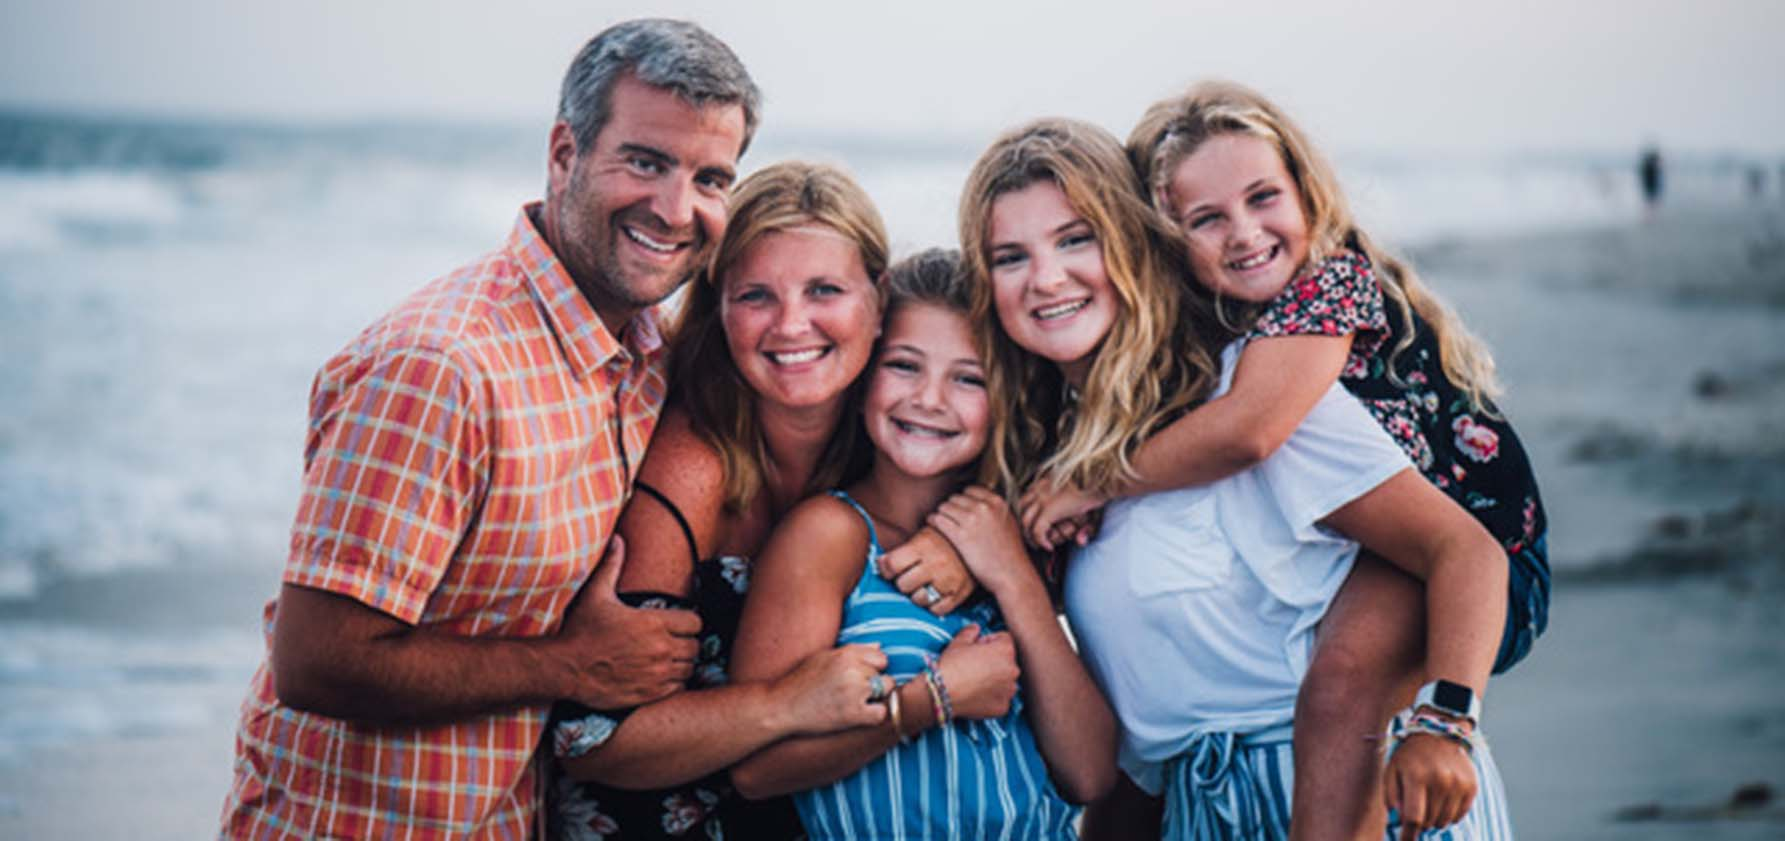 James Coupe '98 and family smile for a family portrait at the beach in the summer of 2019.